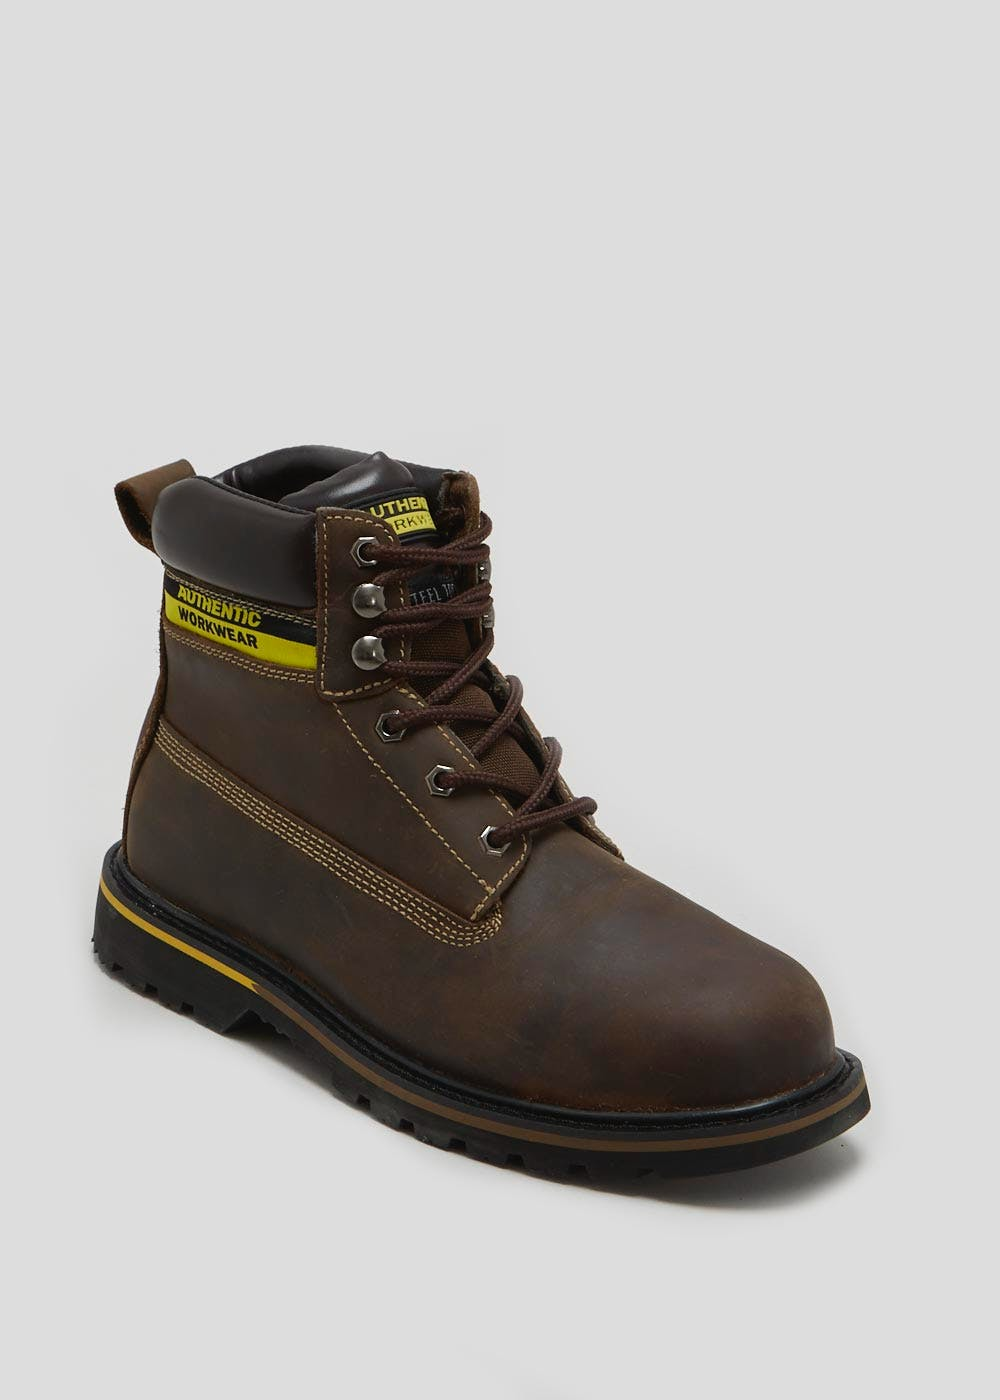 52b6b38dfbb Leather Steel Toe Cap Safety Boots